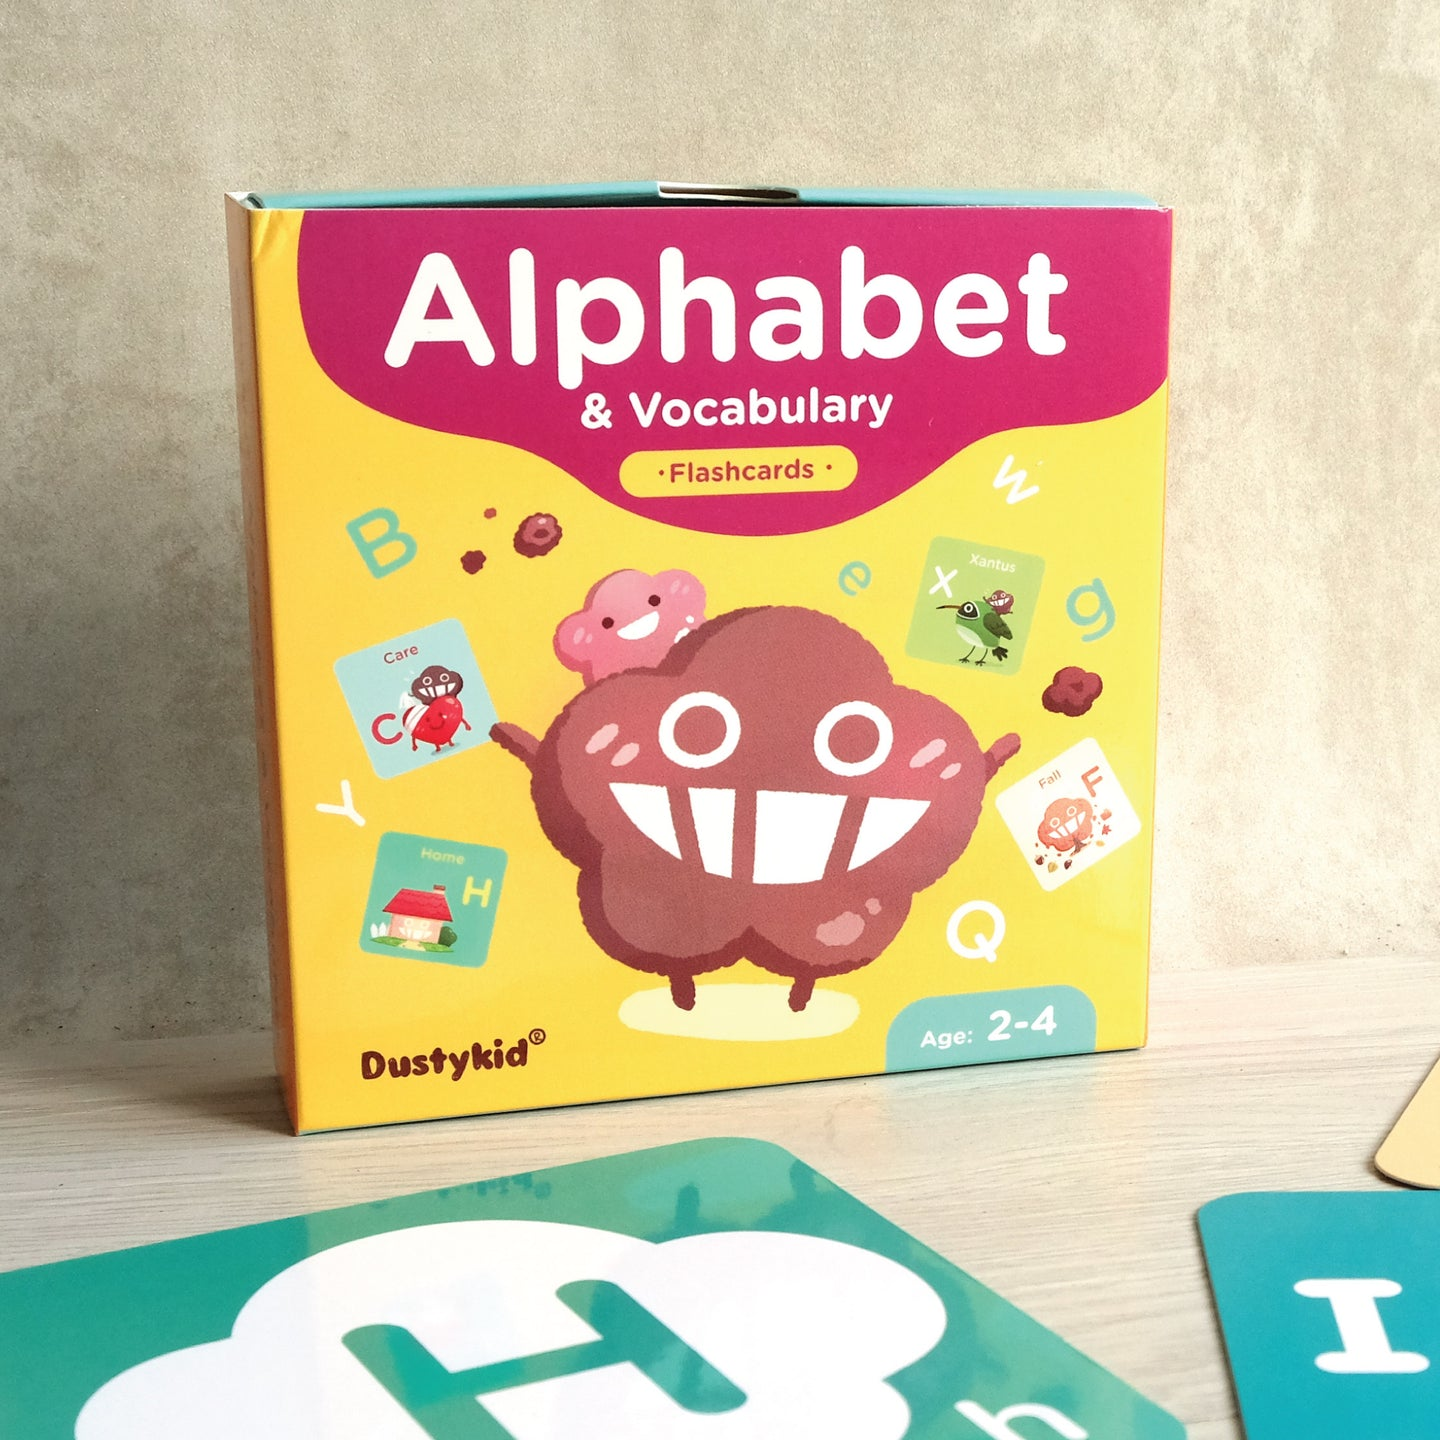 英文字母學習卡 《Alphabet & Vocabulary Flashcards》